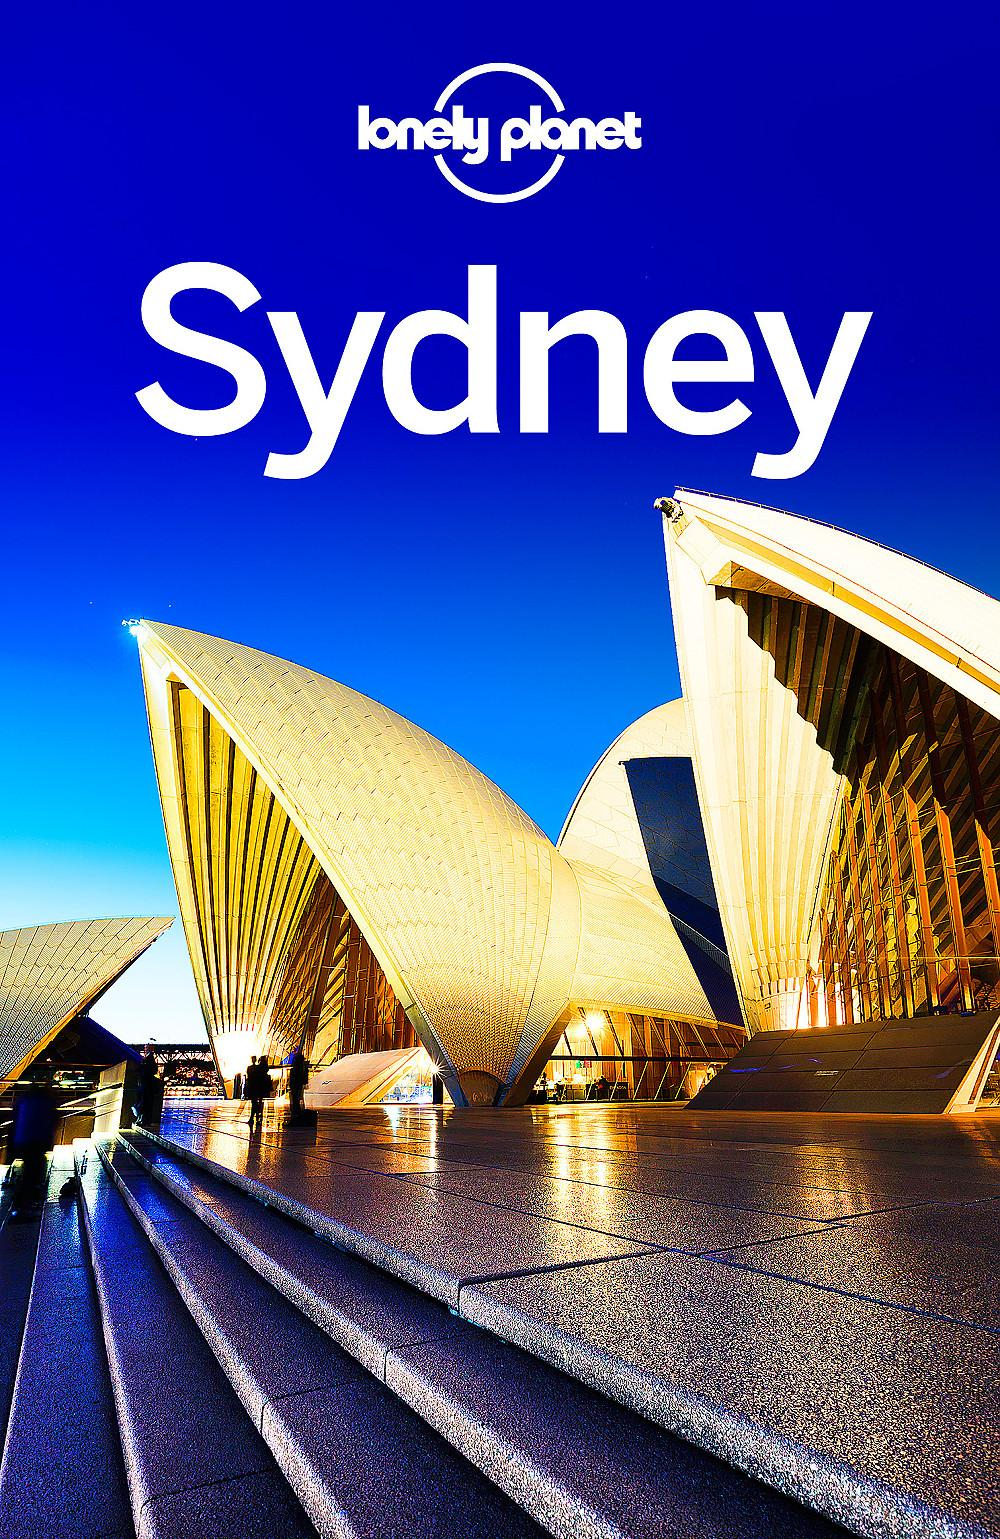 Lonely Planet : Case study | Fastly